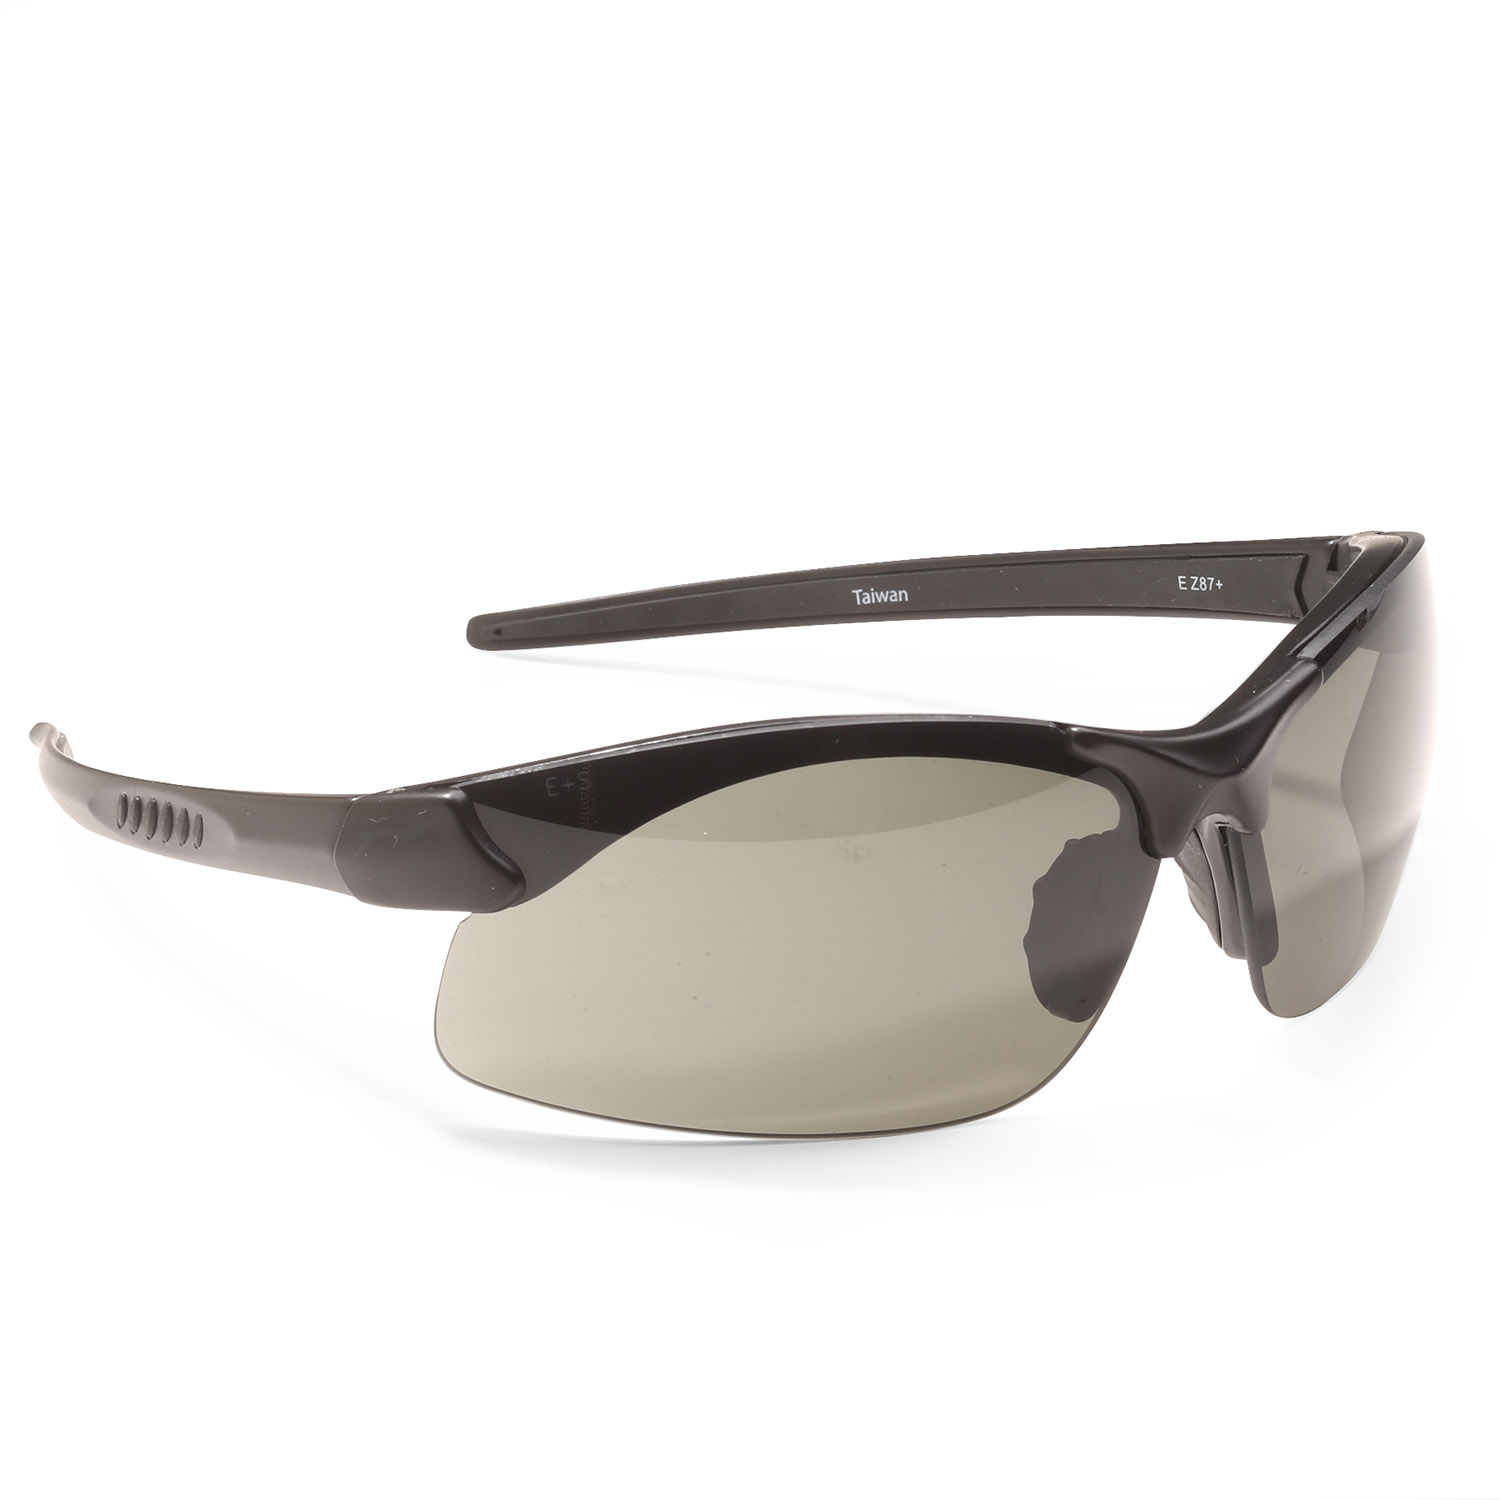 Edge Eyewear Sharp Edge Sunglasses